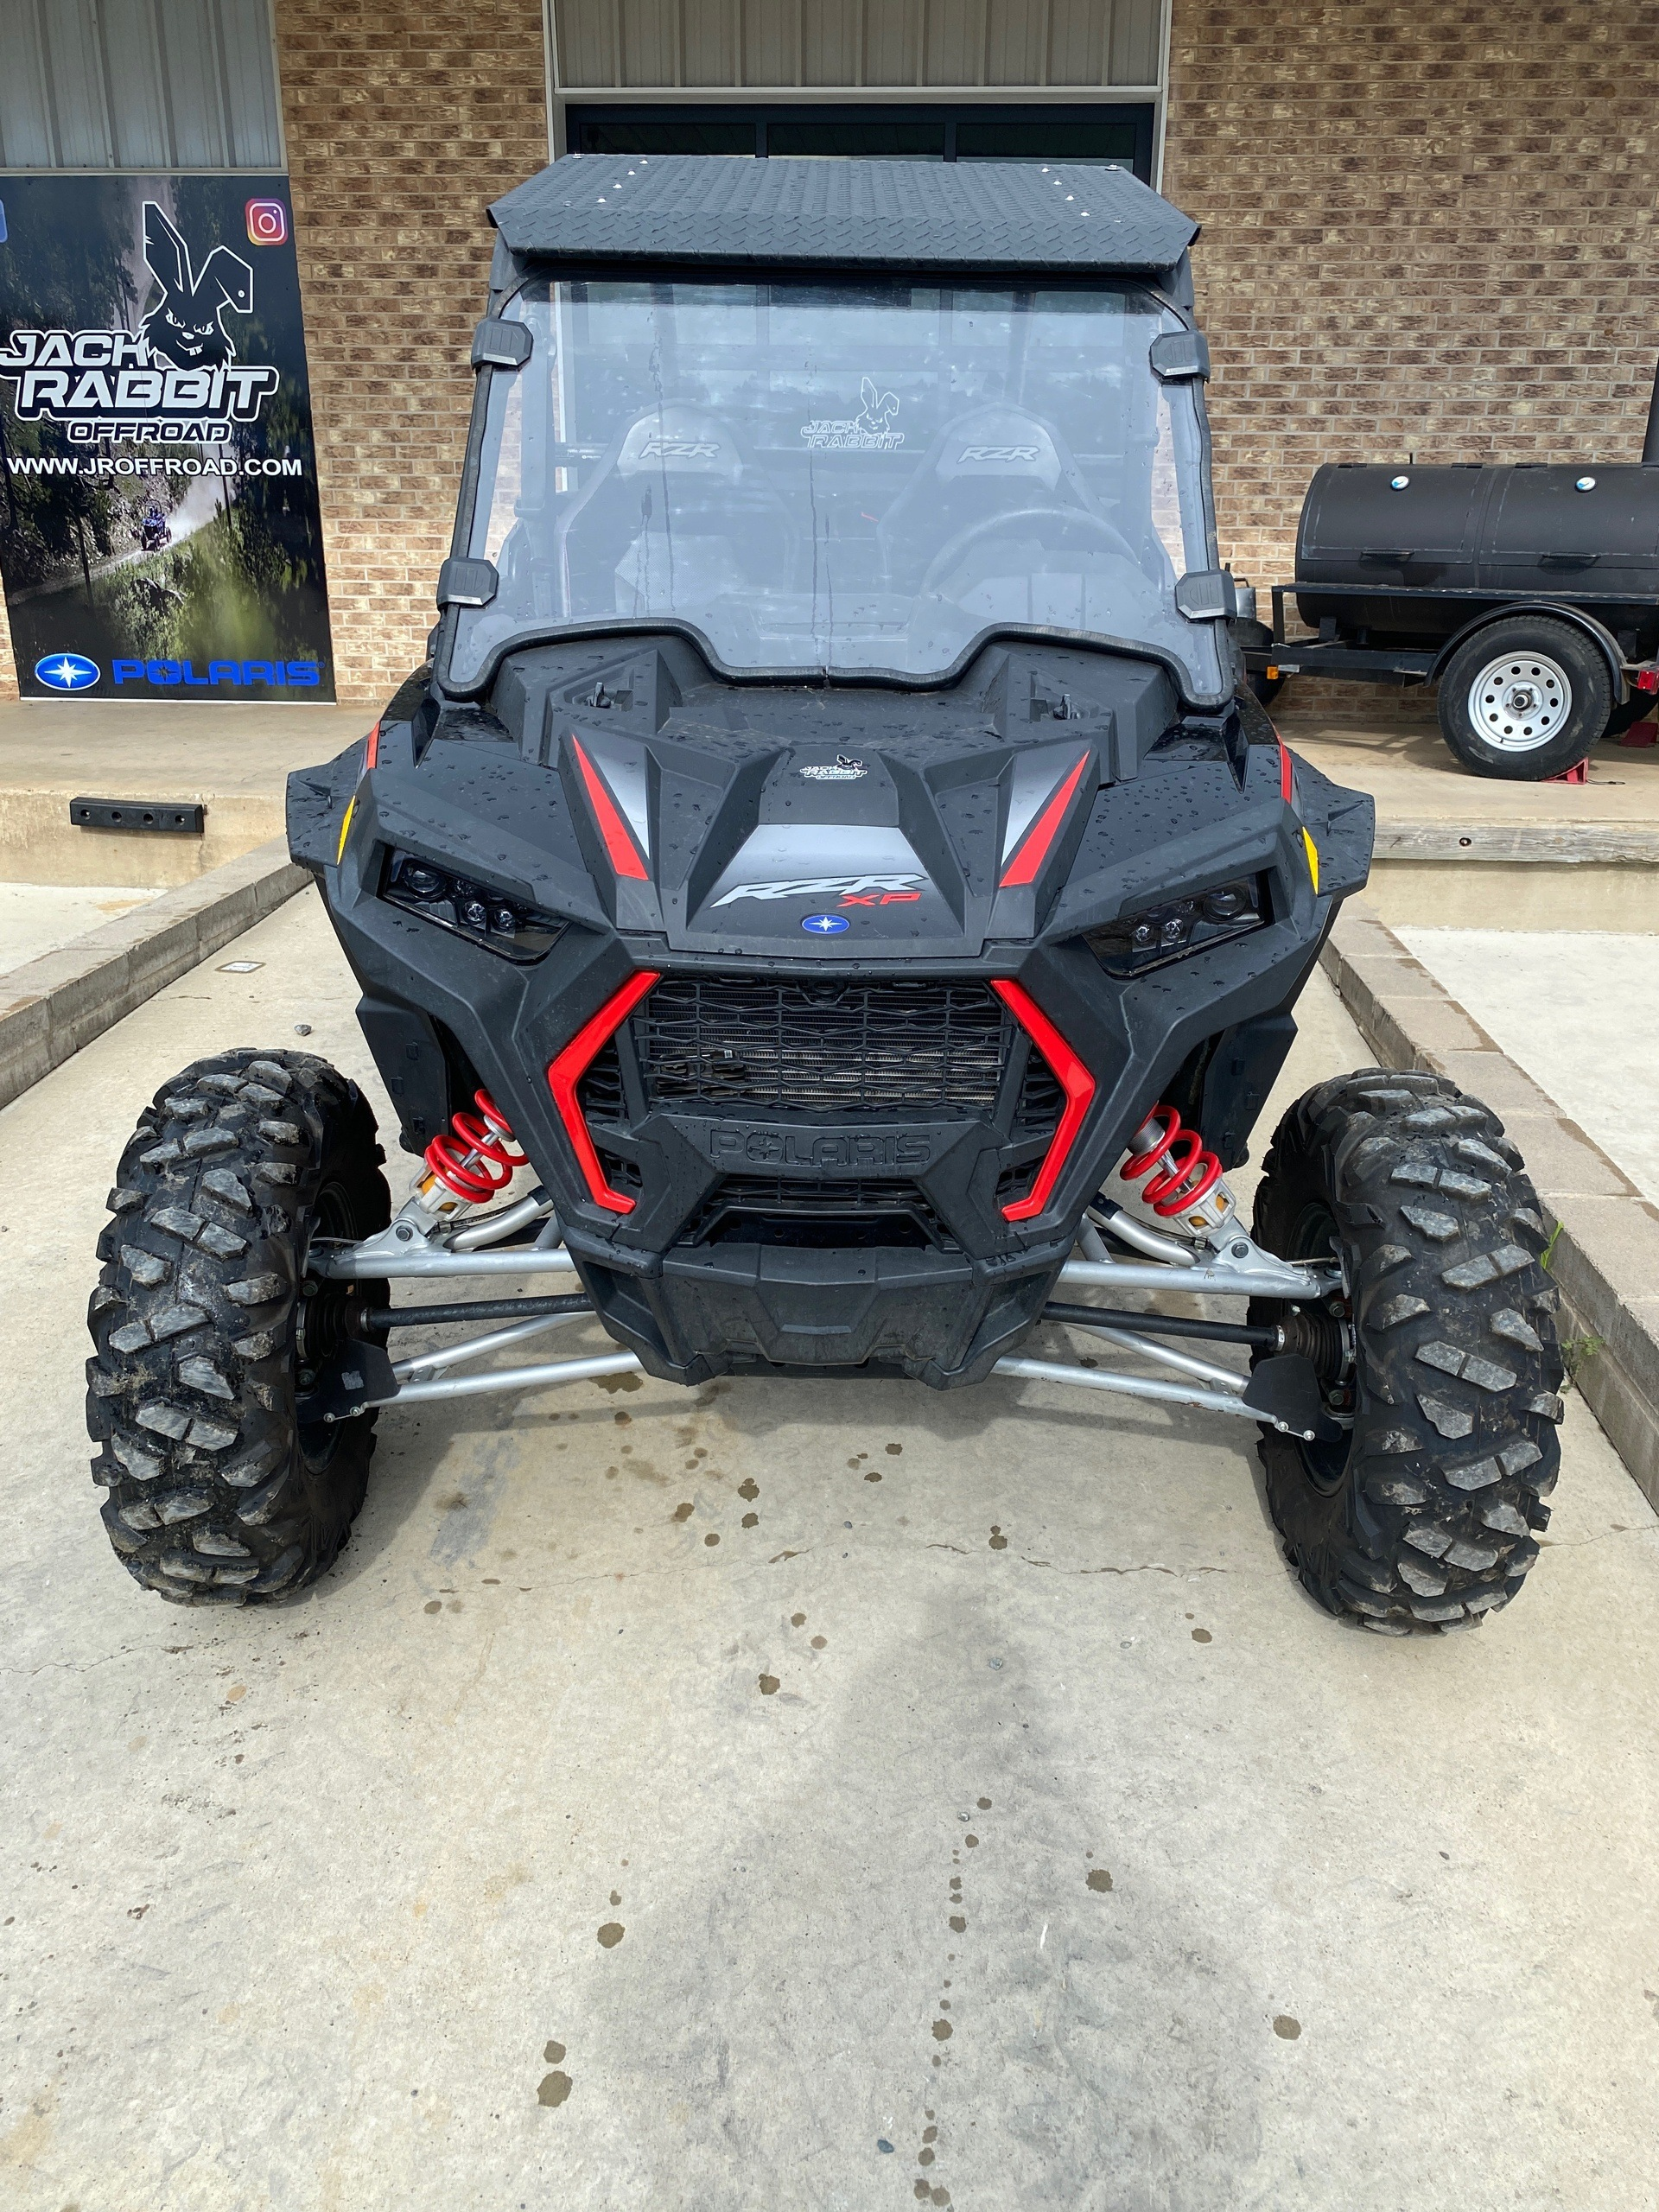 2019 Polaris RZR XP 1000 in Marshall, Texas - Photo 6